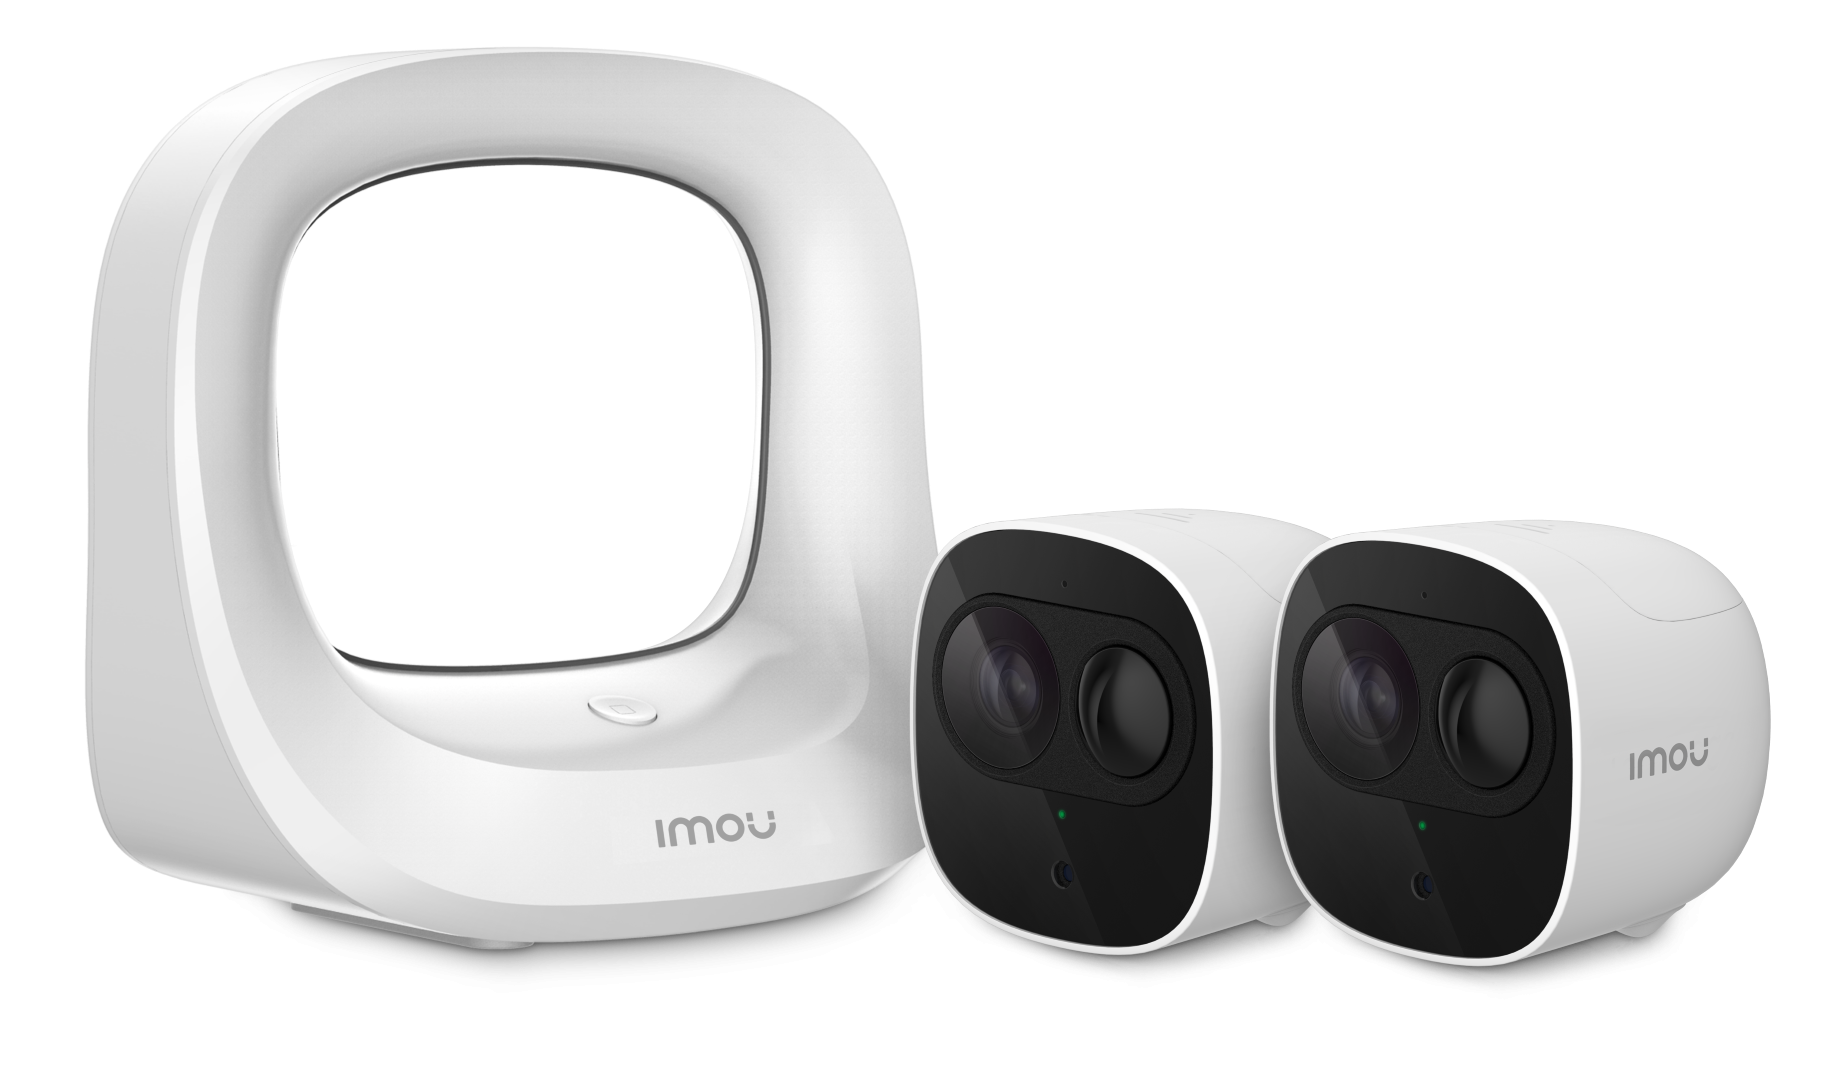 IMOU Cell Pro Draadloos Camerasysteem Duo Kit